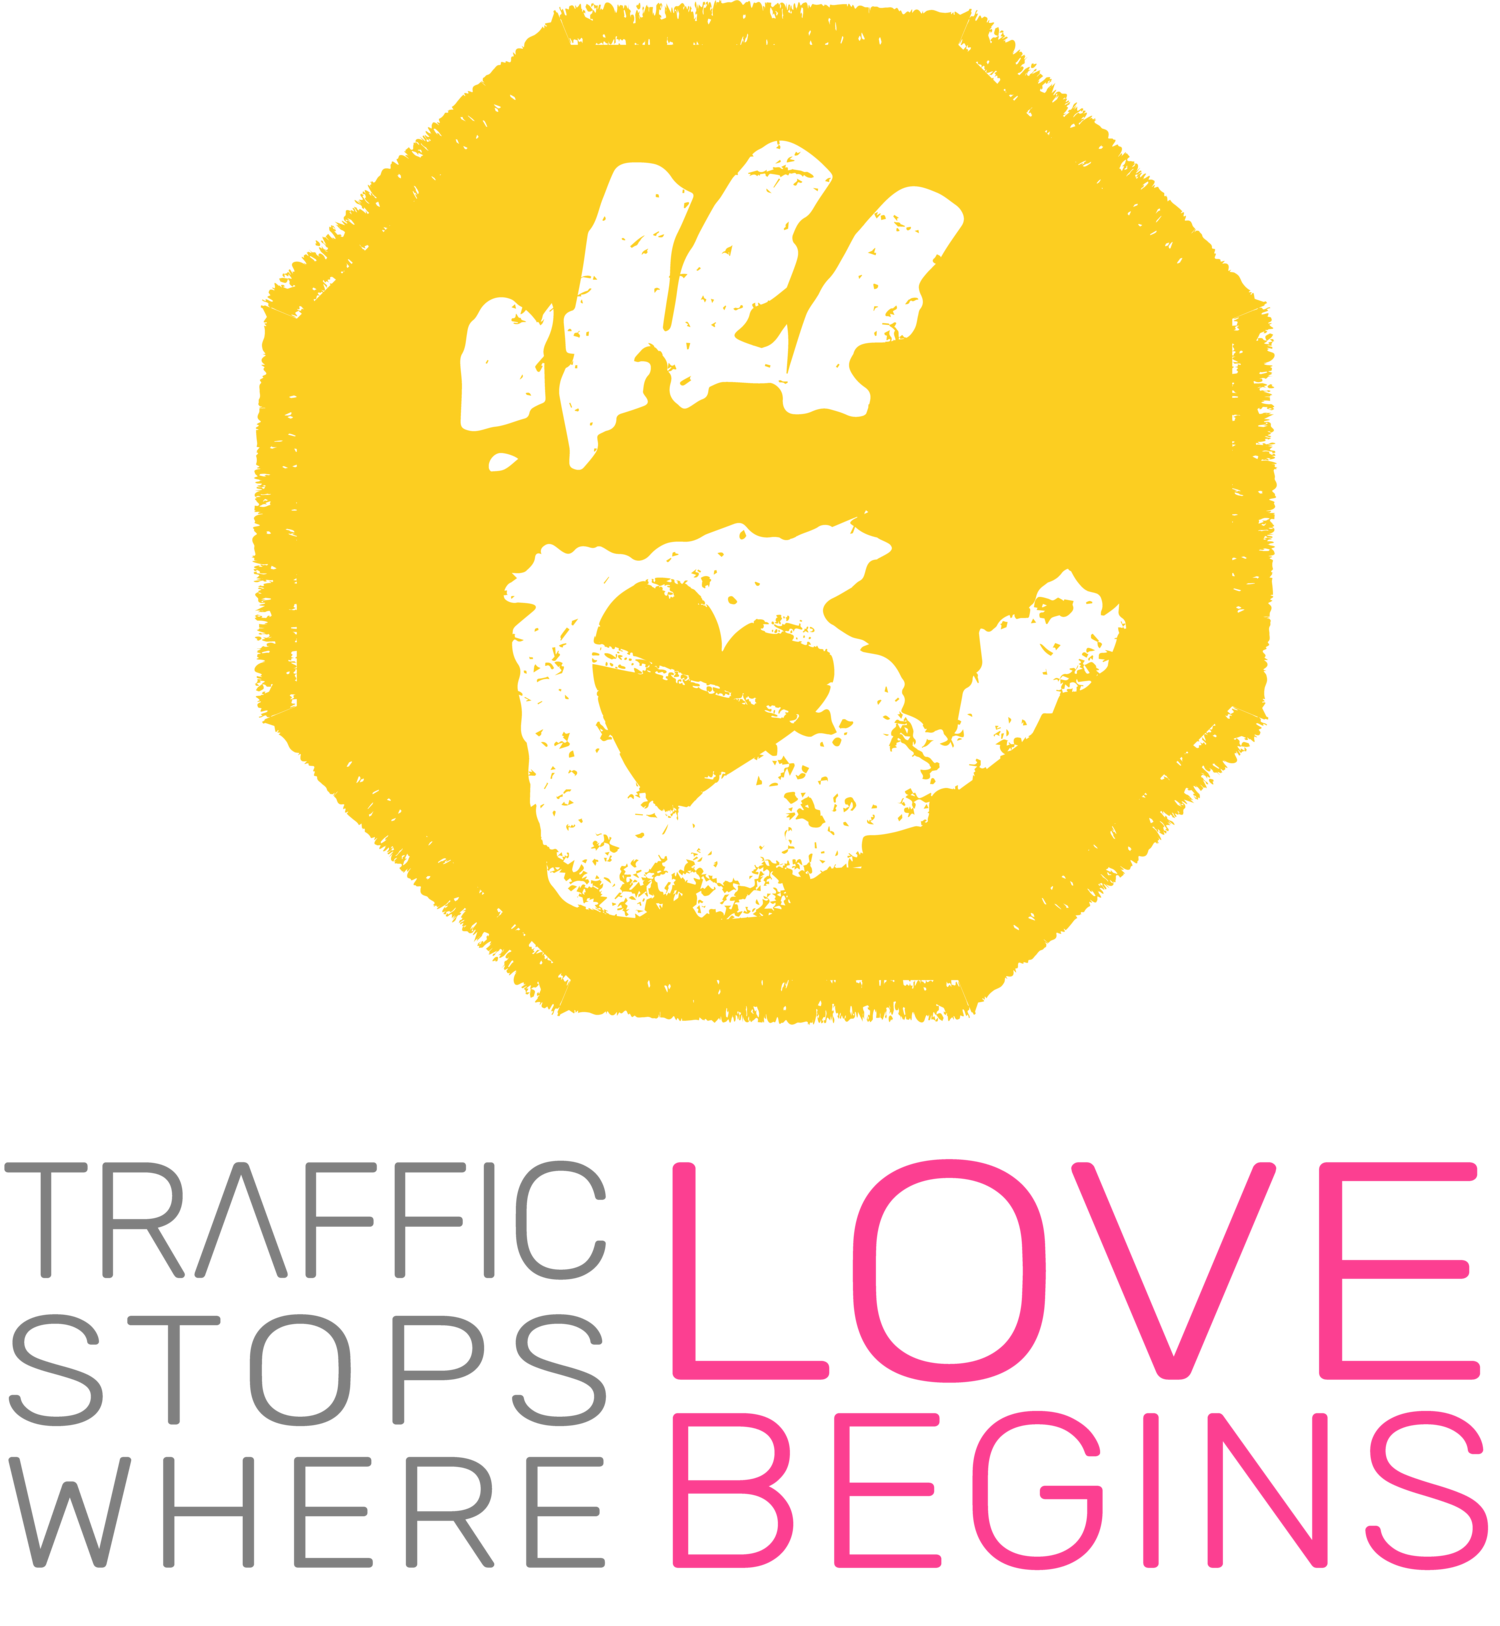 TRAFFIC STOPS WHERE LOVE BEGINS